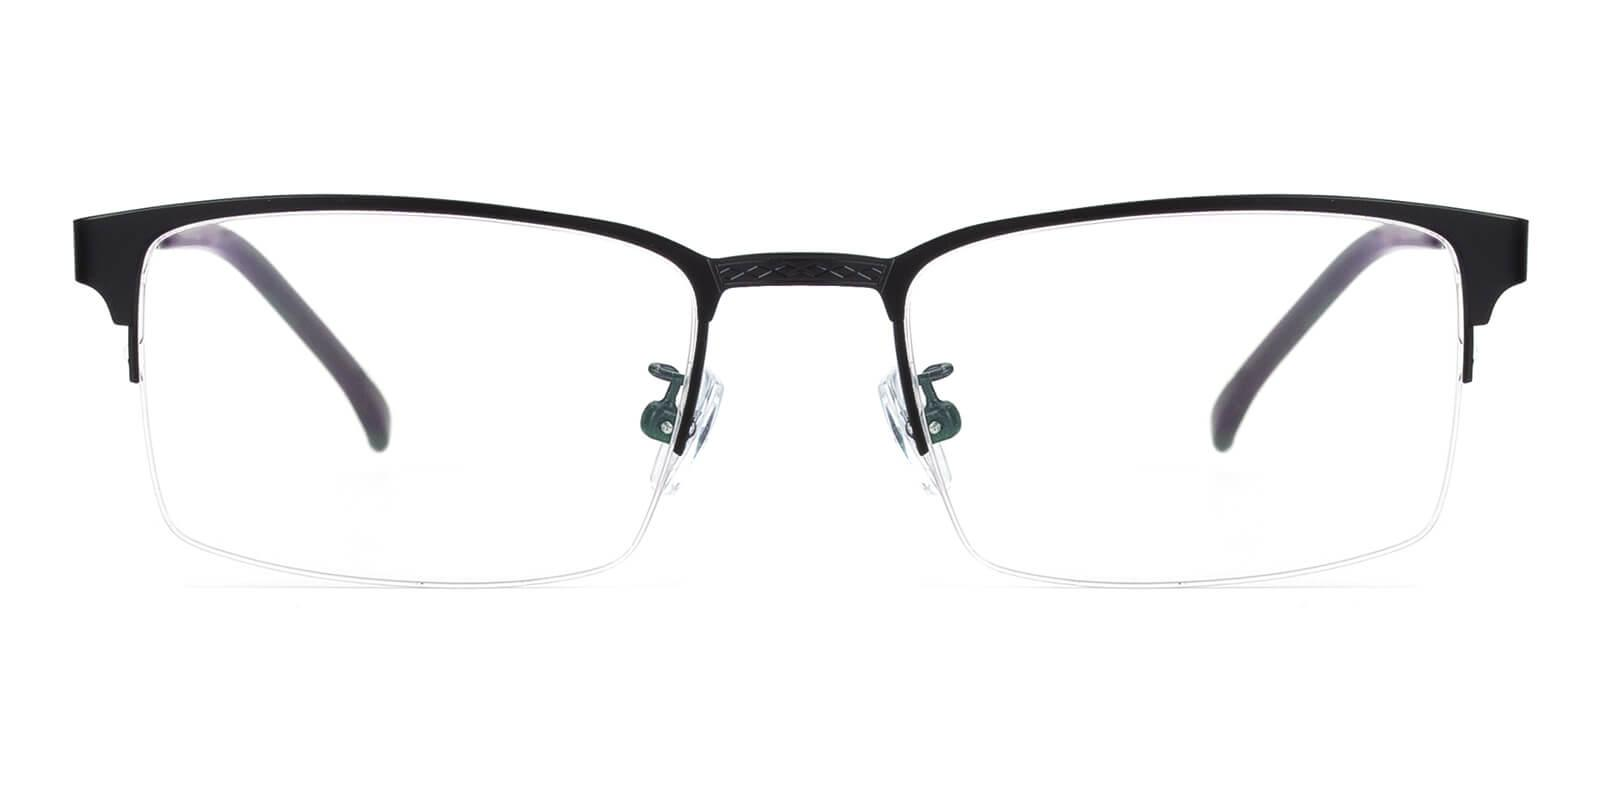 Emmptie-Black-Rectangle-Metal-Eyeglasses-additional2